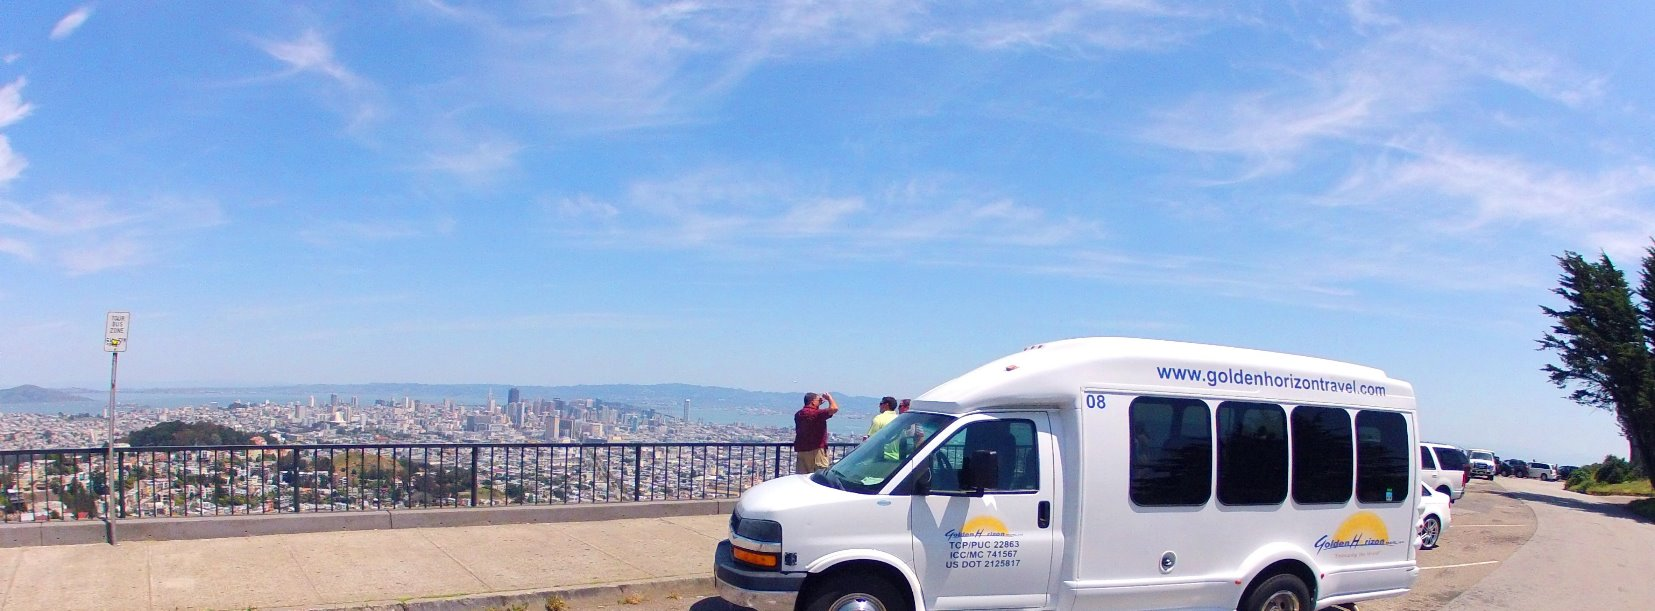 best_half_day_private_guided_tour_of_san_francisco_top_sights_and_attractions